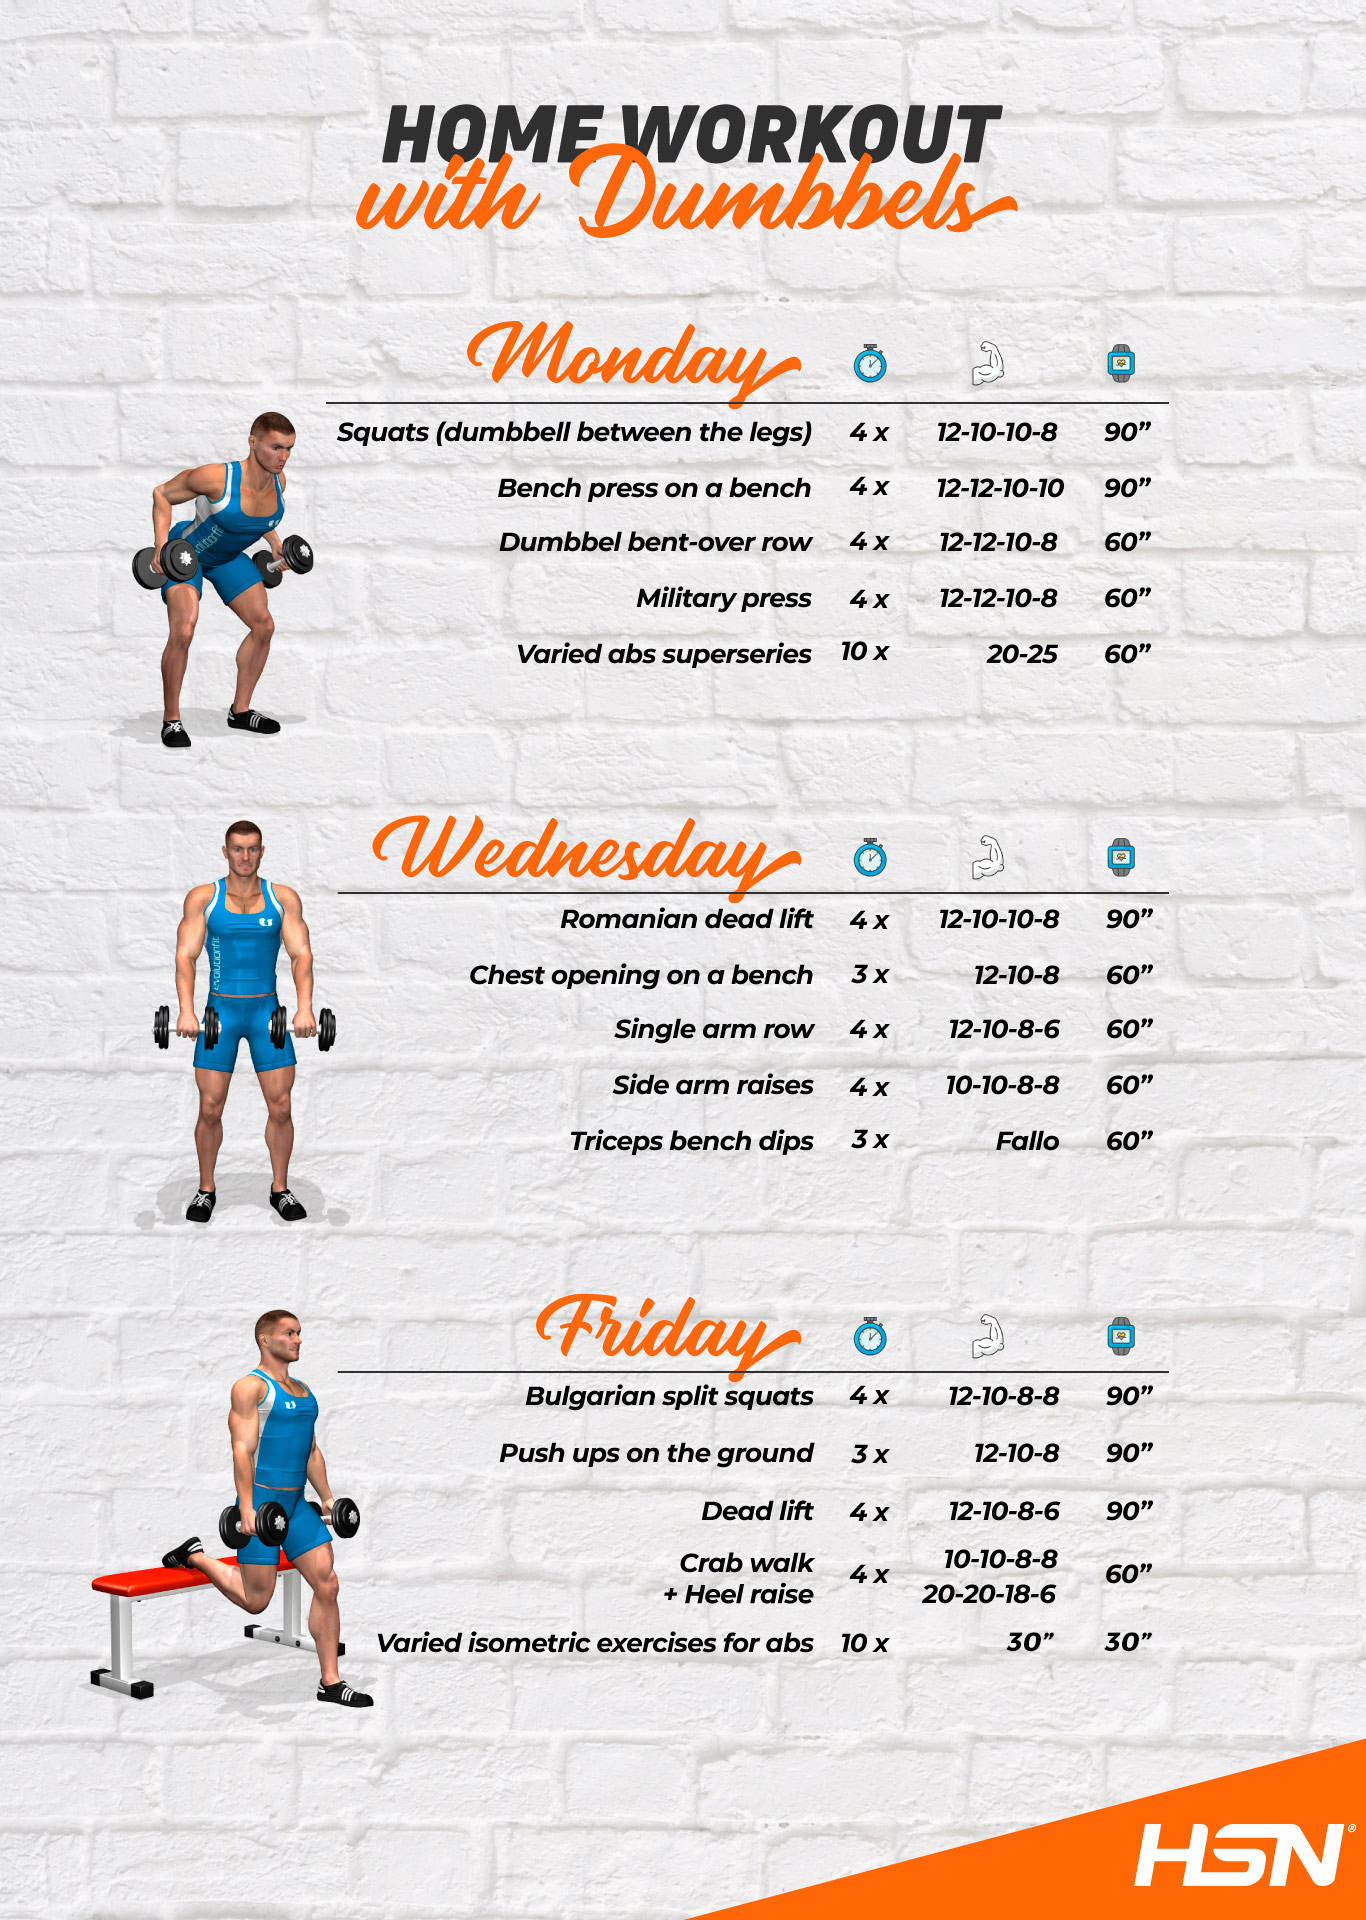 Home Workout with Dumbbells